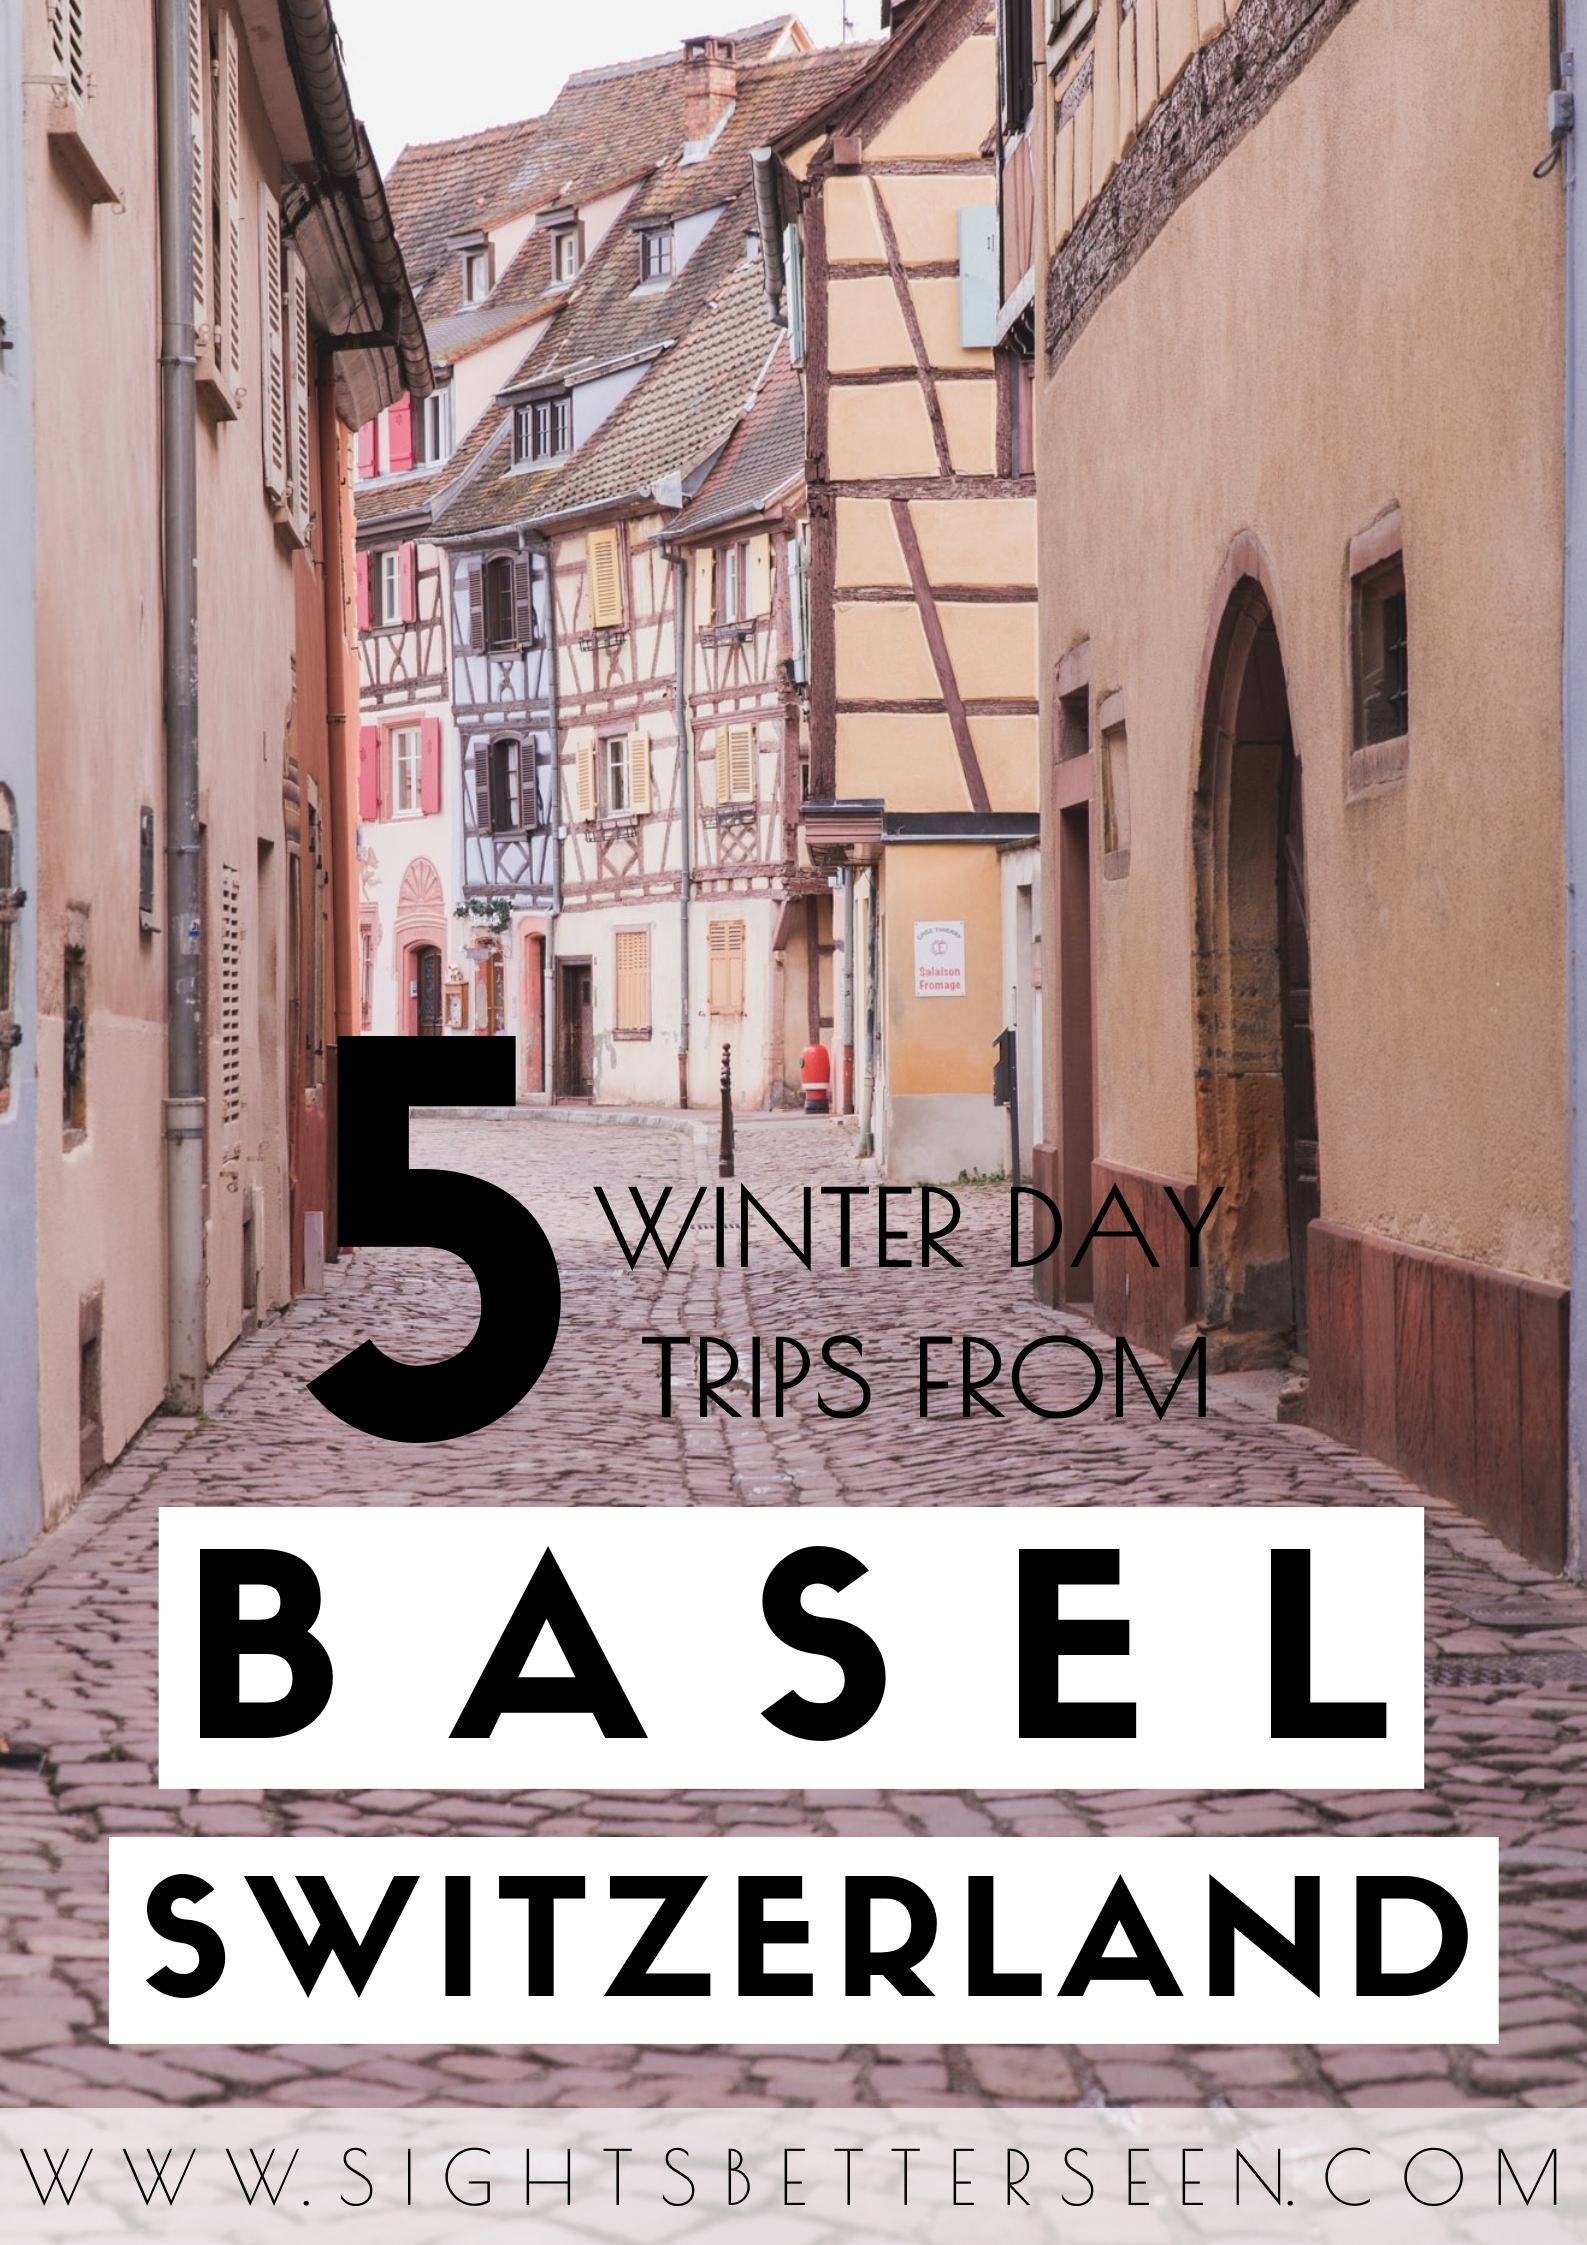 The best day trips from Basel that will let you see the best of winter in Switzerland! From the Swiss Alps to small towns like Colmar, there's plenty to see and do!